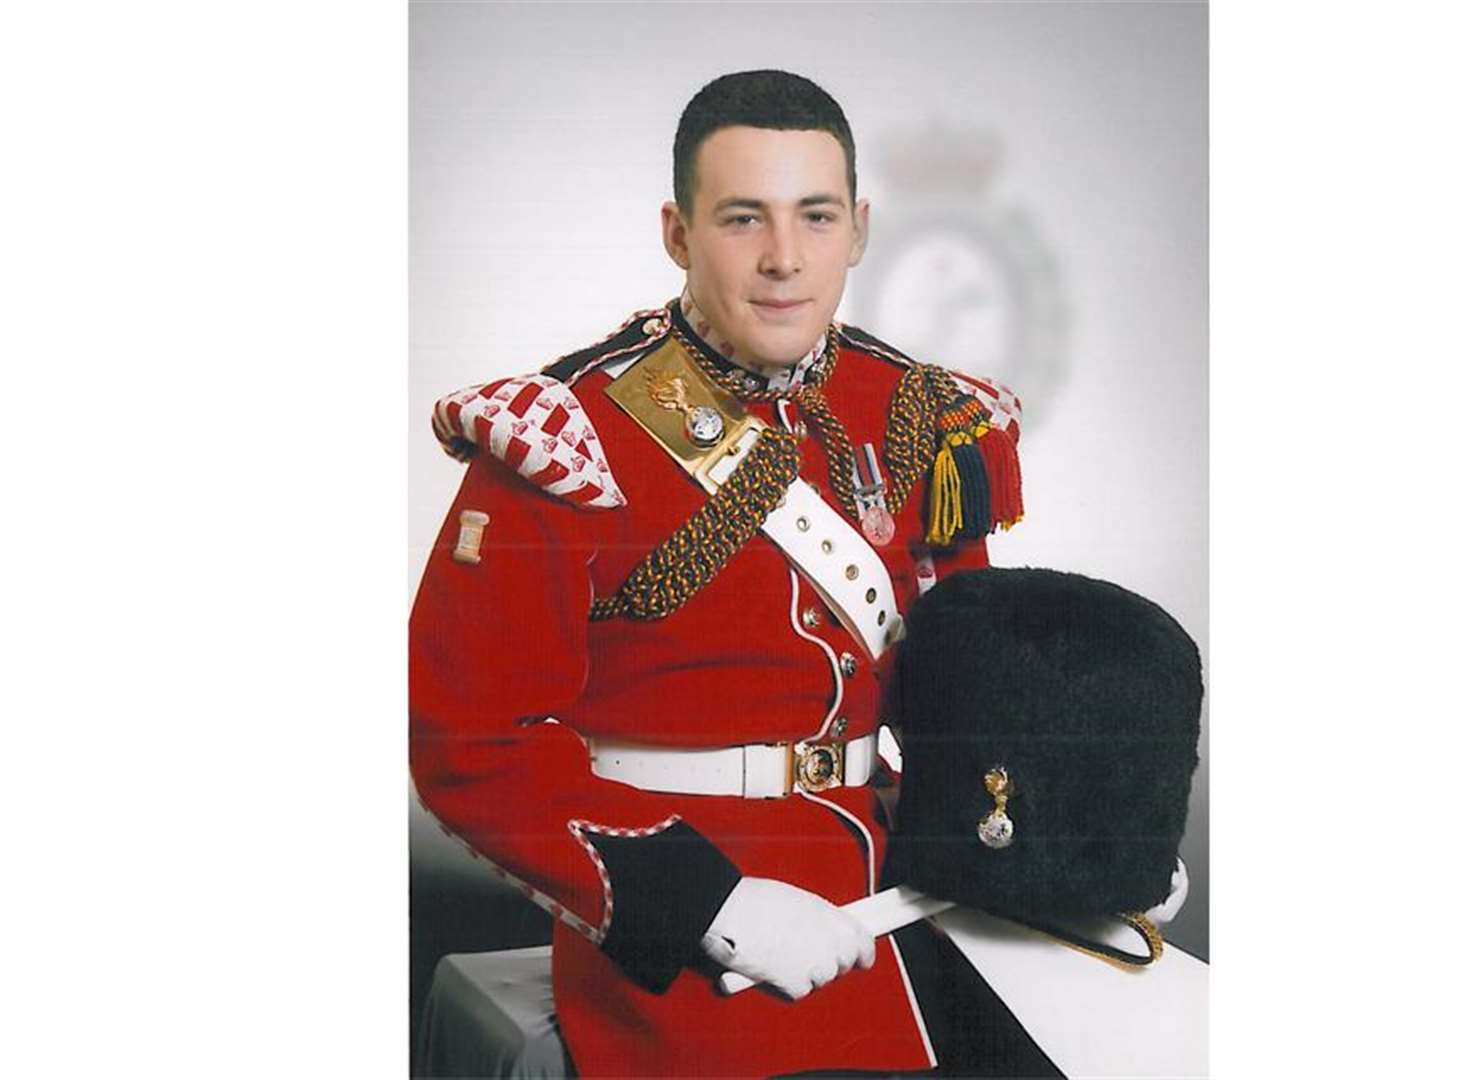 Bikers to pay tribute with ride for murdered soldier